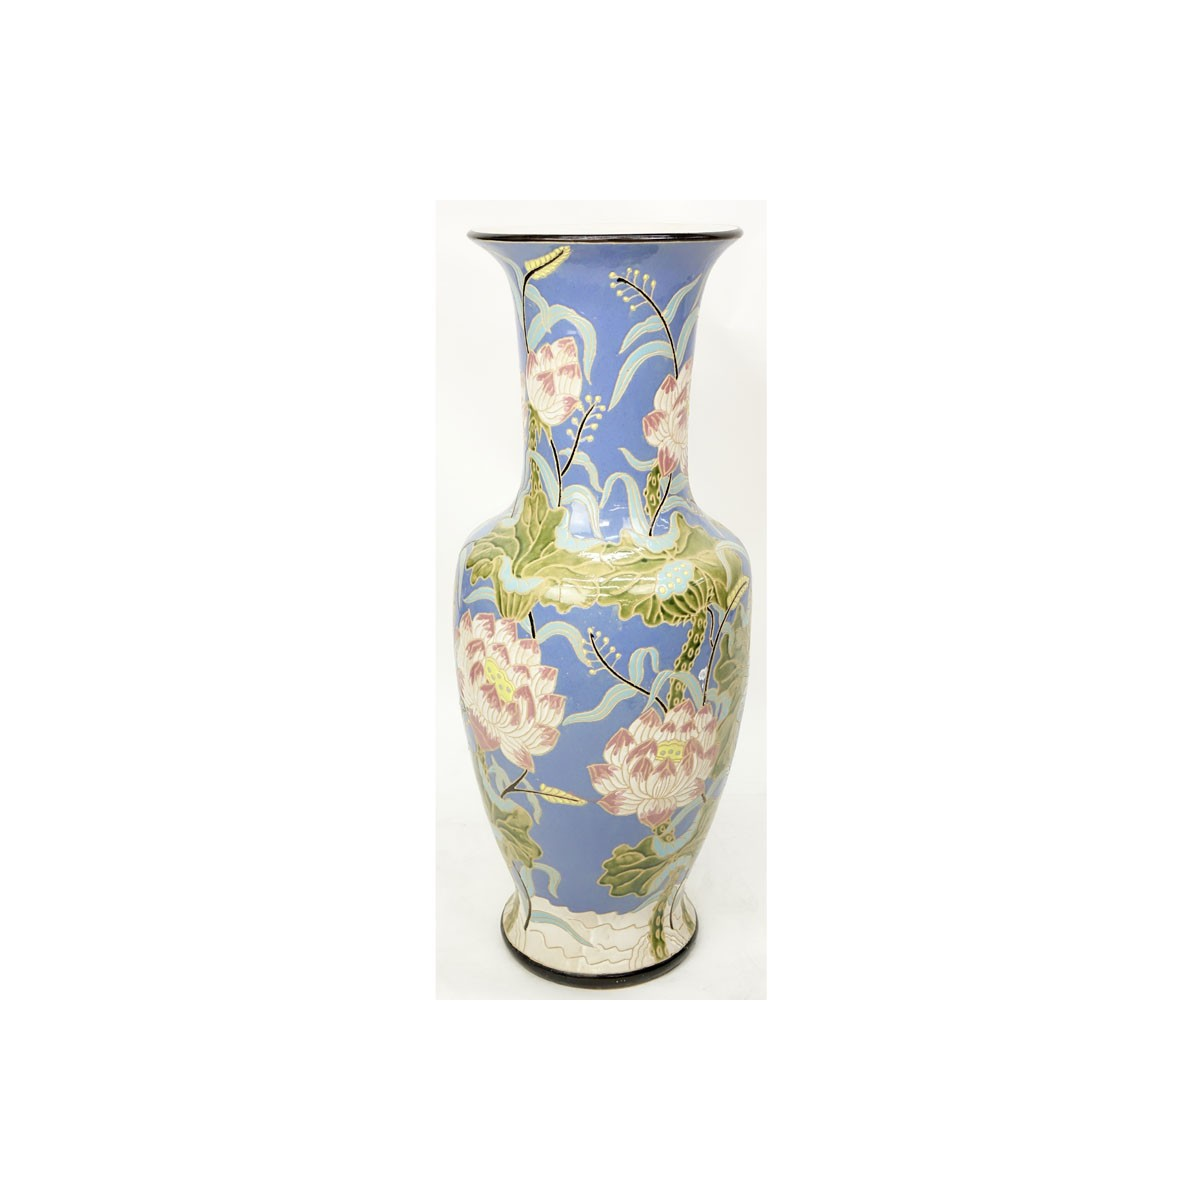 Monumental Majolica Pottery Vase. Features Asian inspired lotus flower motif on blue ground. Unsign